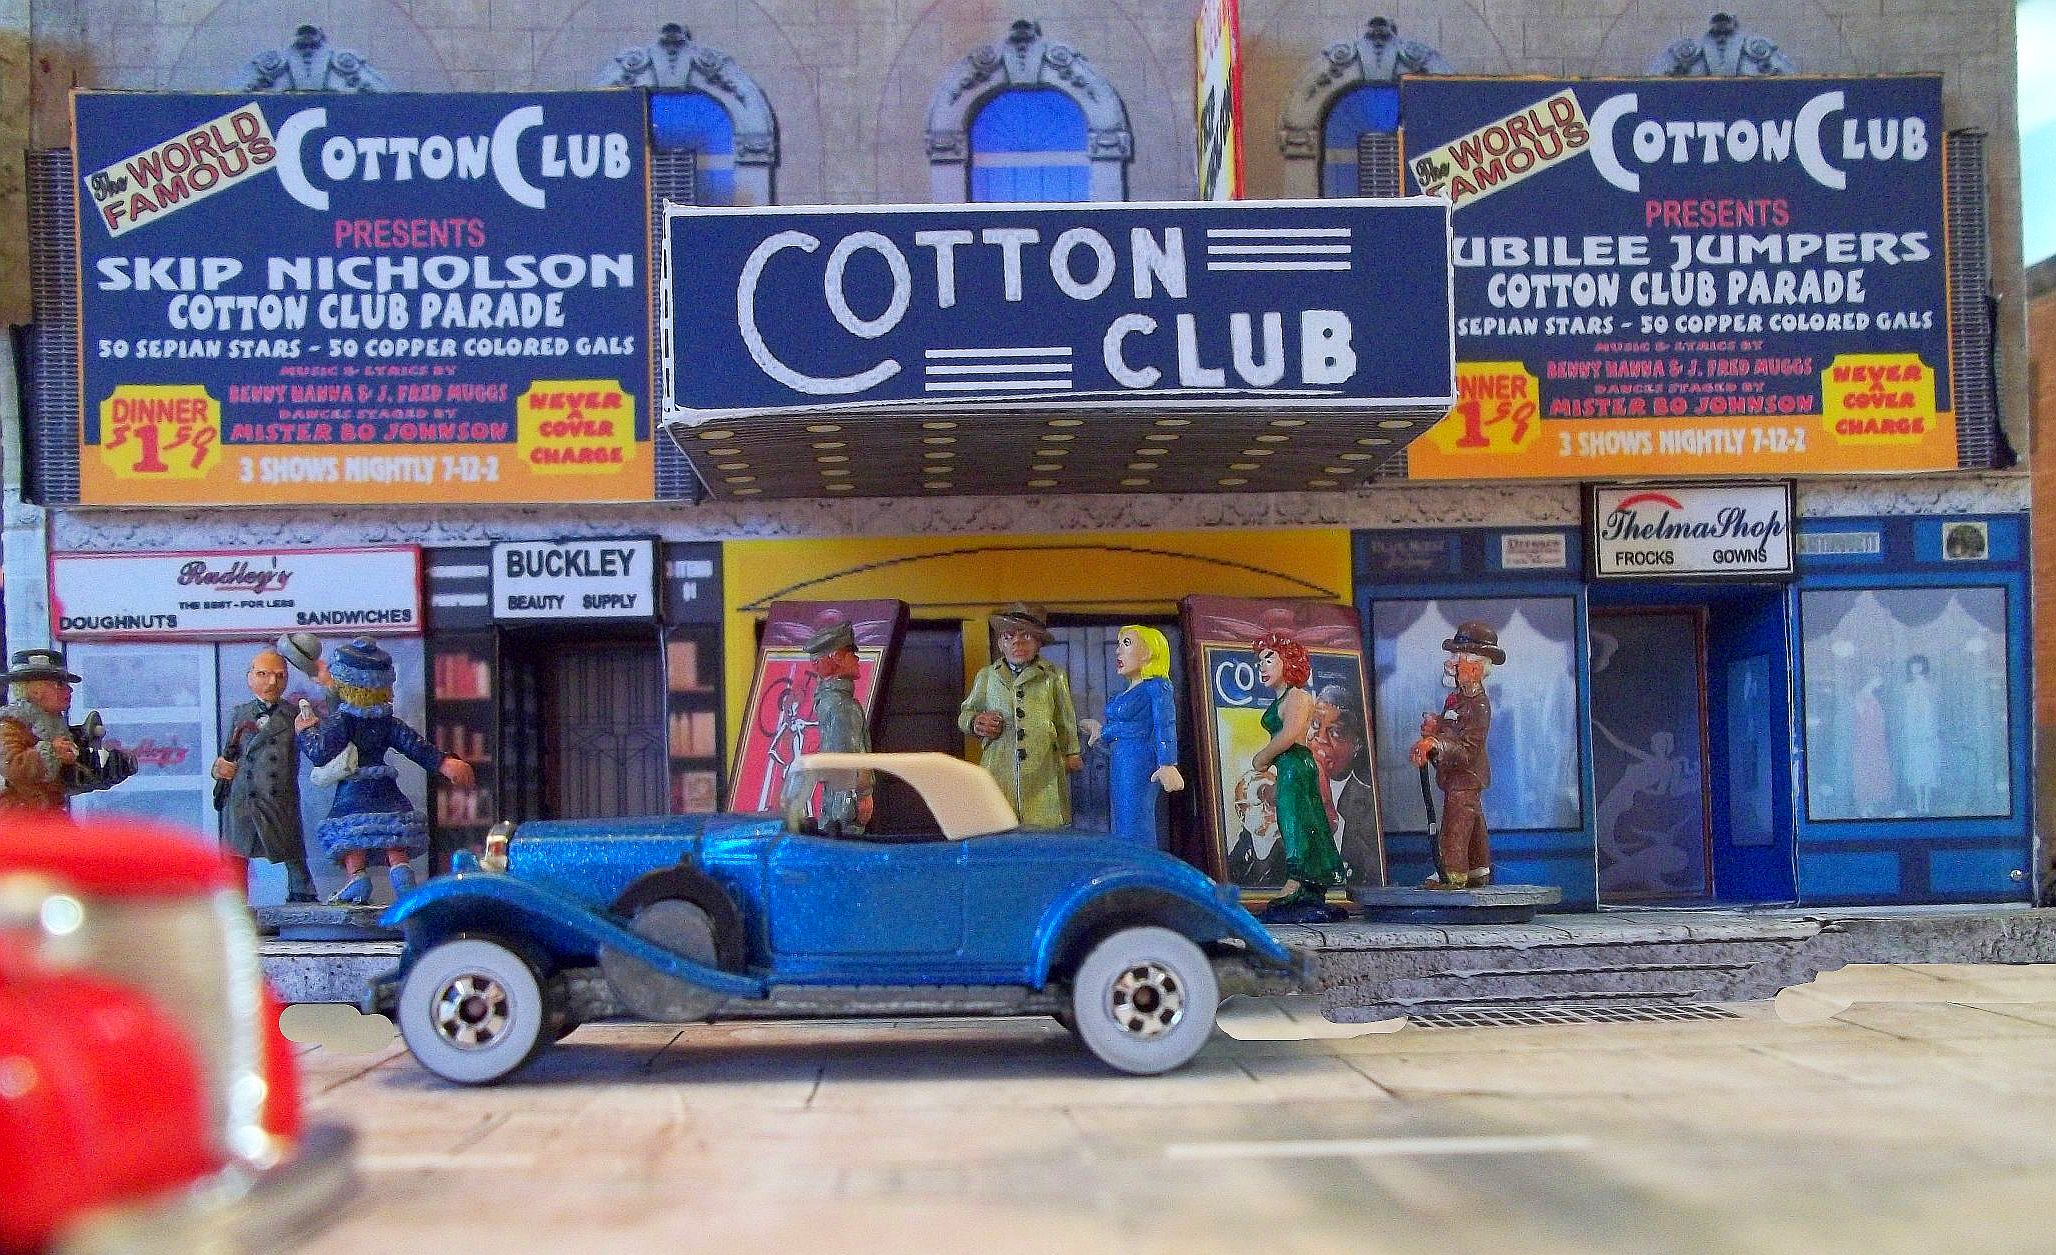 The Cotton Club Front